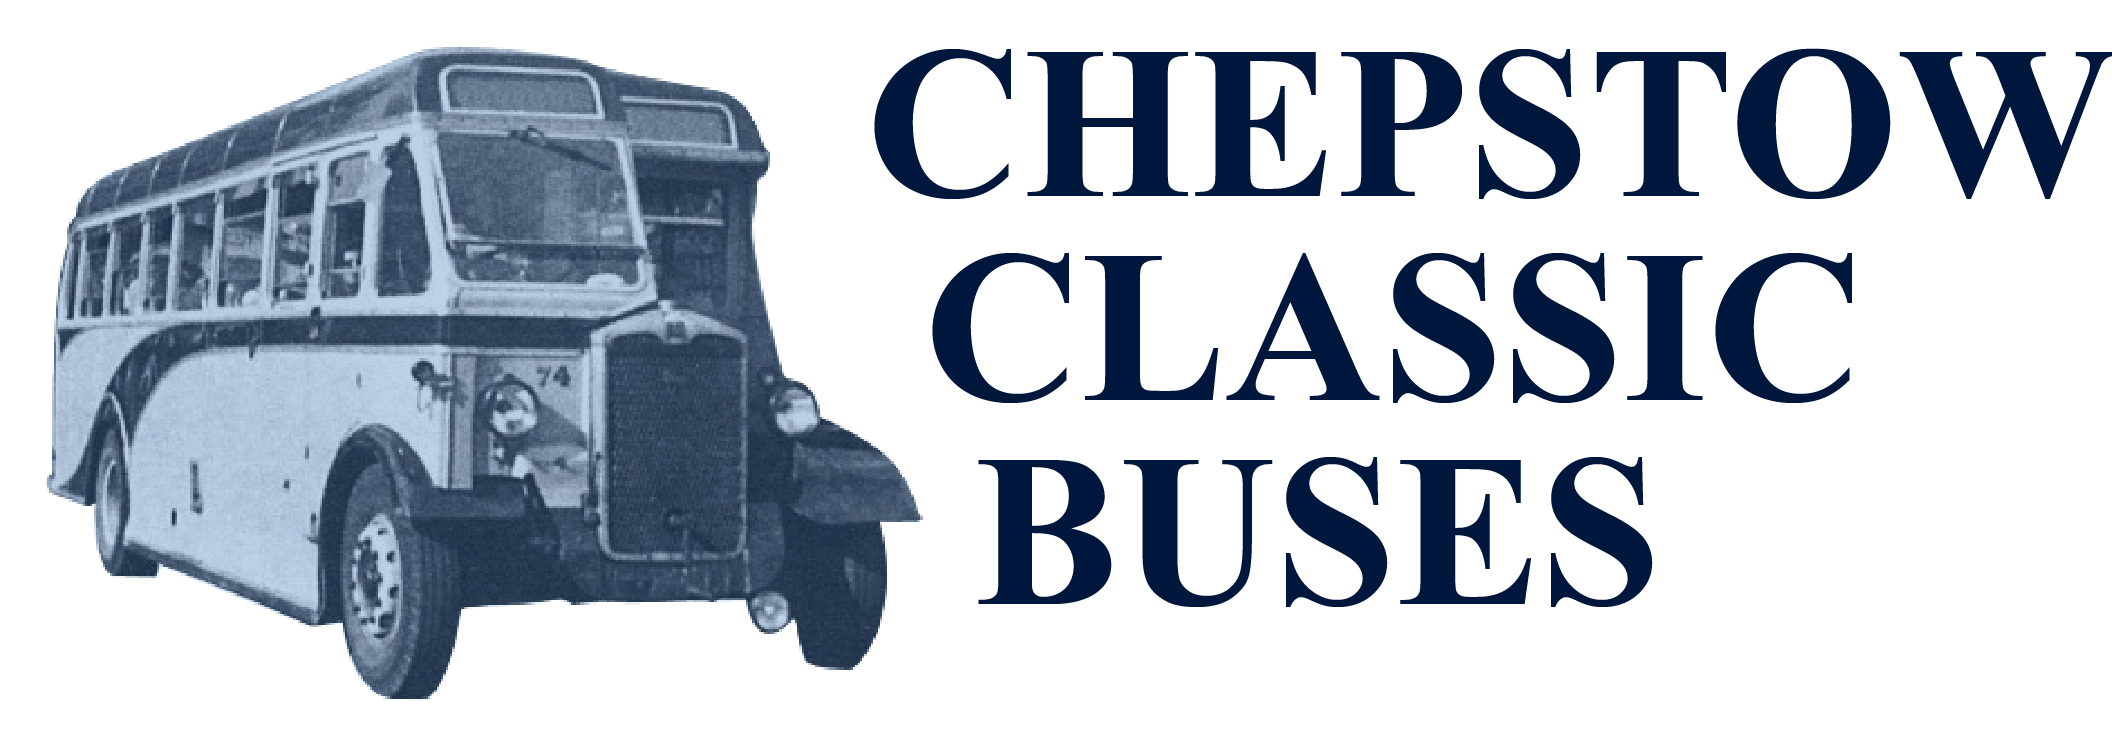 Vintage bus here | Chepstow Classic Buses